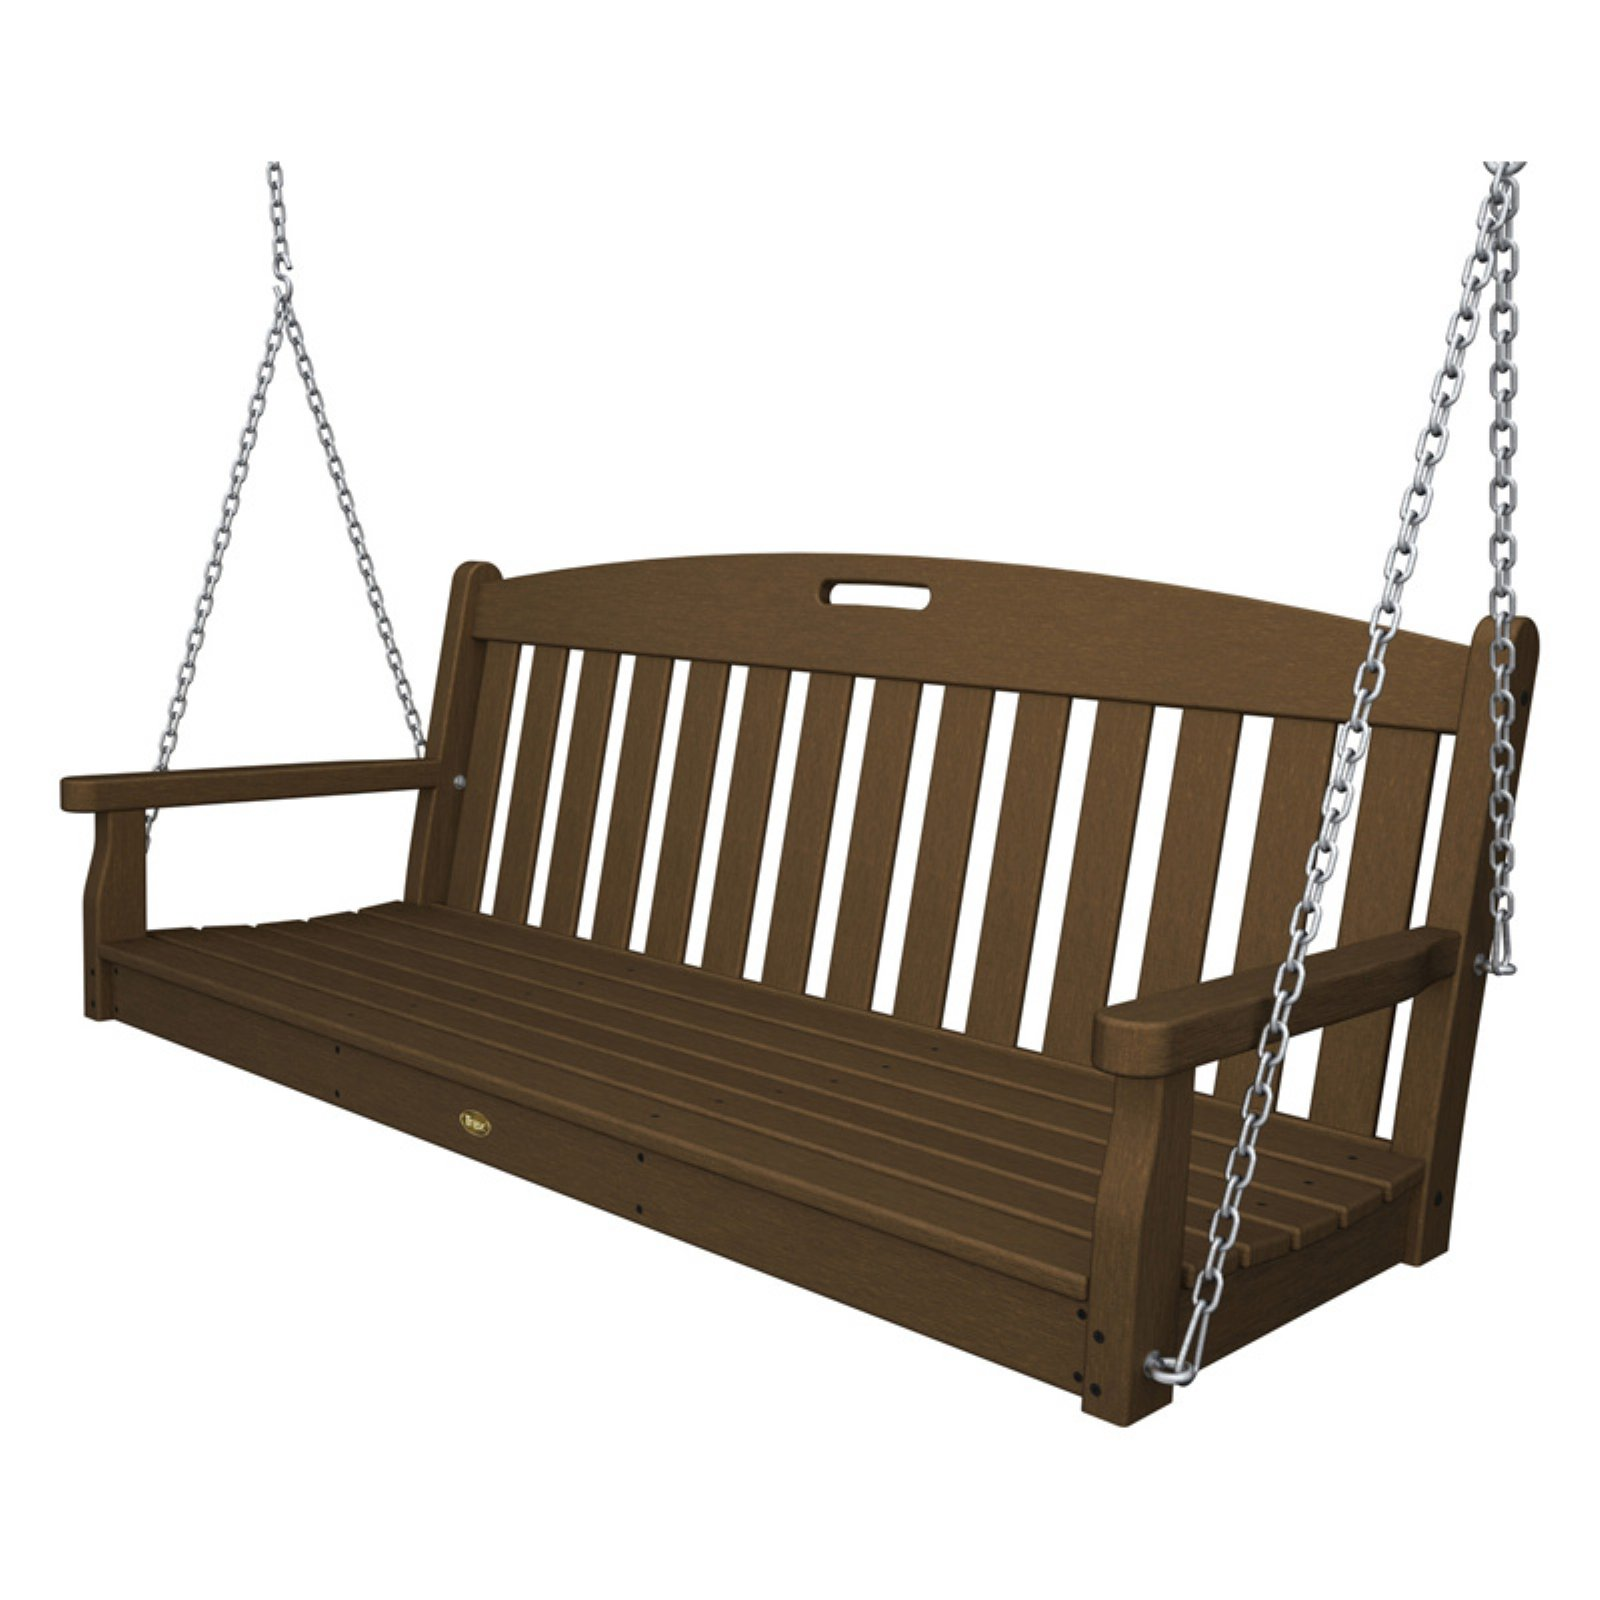 Polywood Trex Outdoor Furniture Recycled Plastic 5 ft. Yacht Club Porch Swing